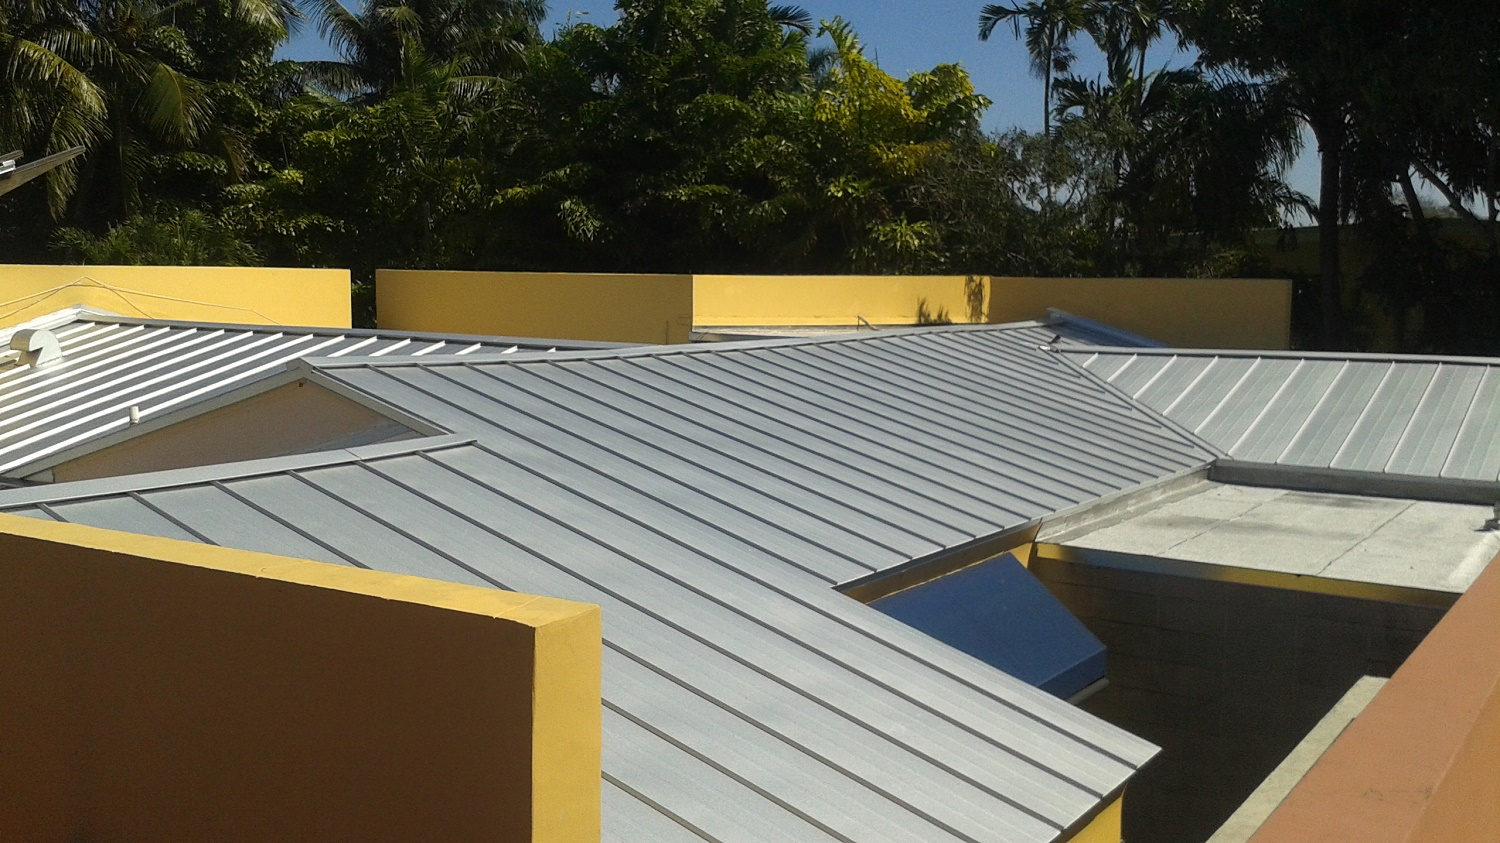 Roofing Photos Miami Roofer Mike Inc Gallery